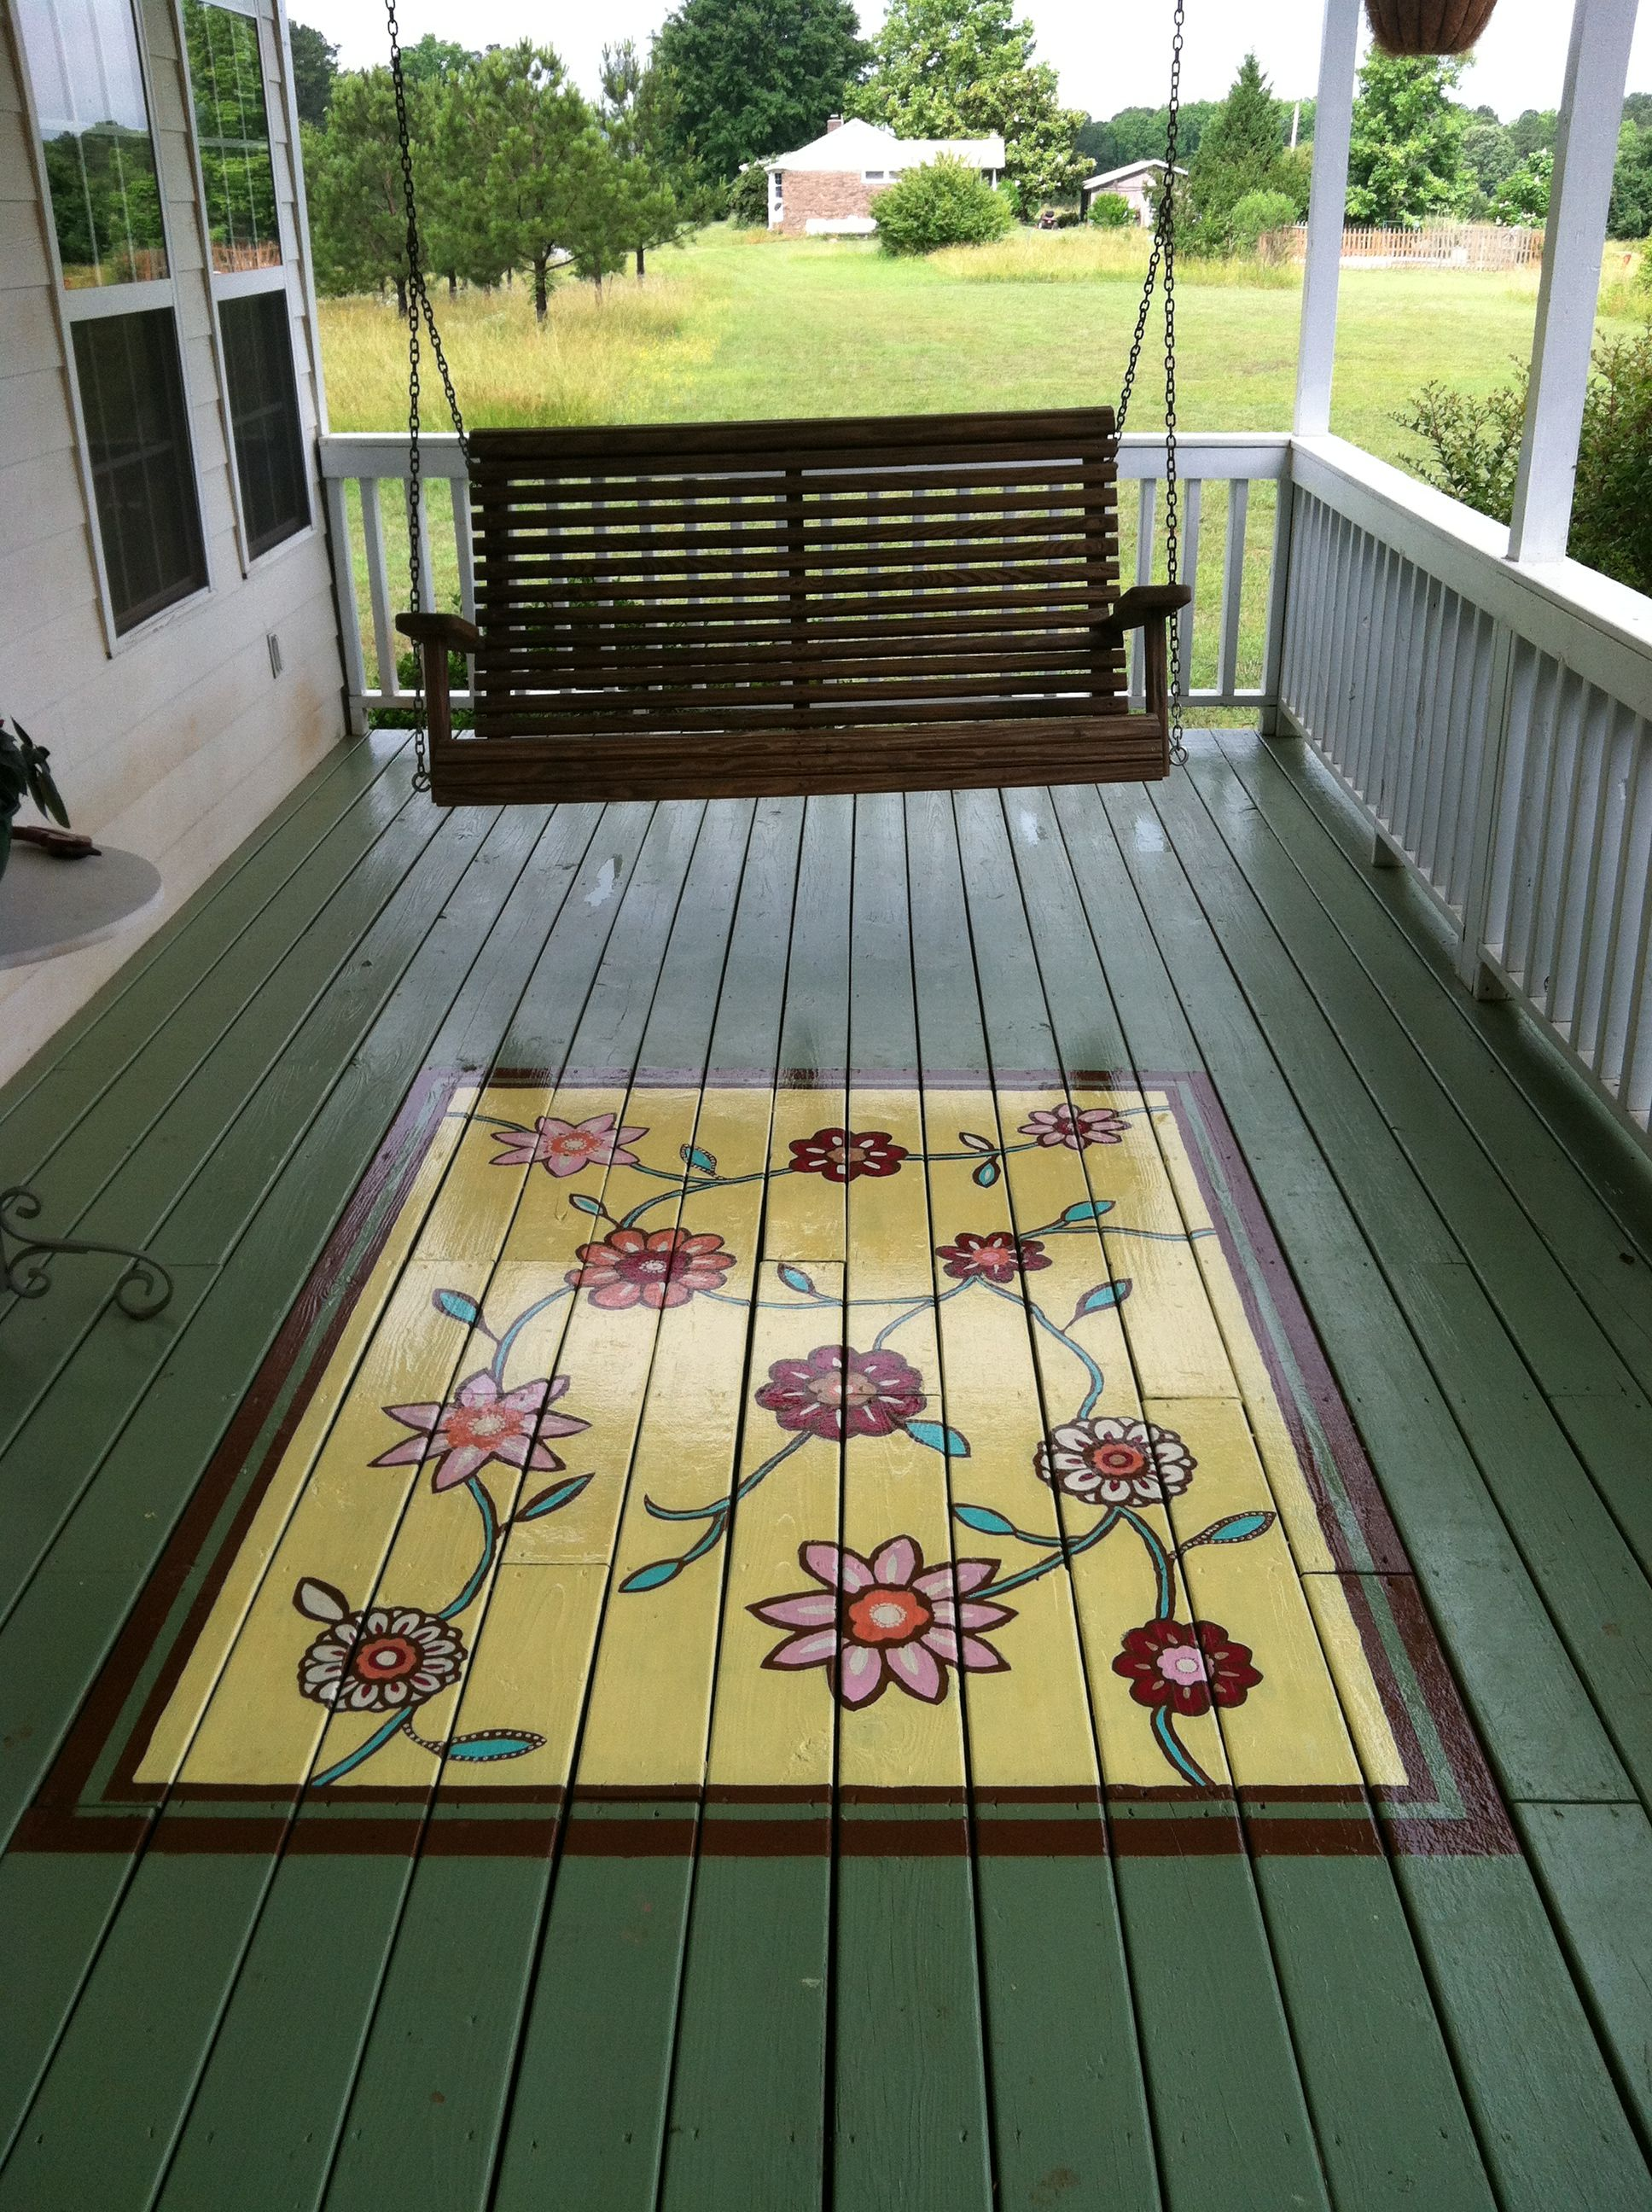 Painted porch rug | For the porch | Pinterest | Porch ...